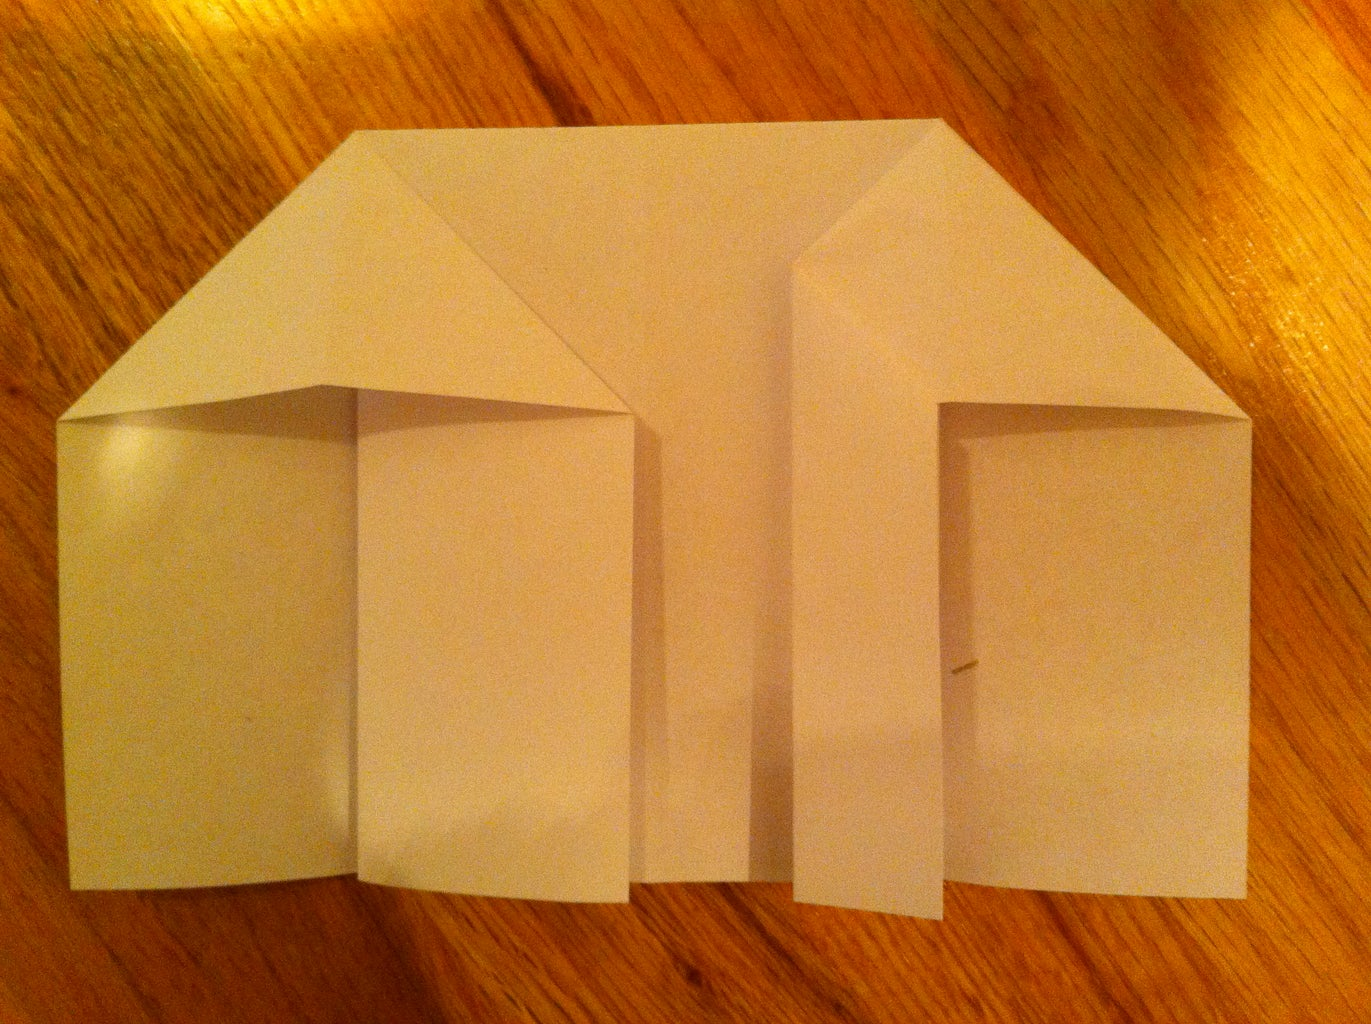 Fold One of the Flaps Halfway to Meet the Center Line of the Triangle.